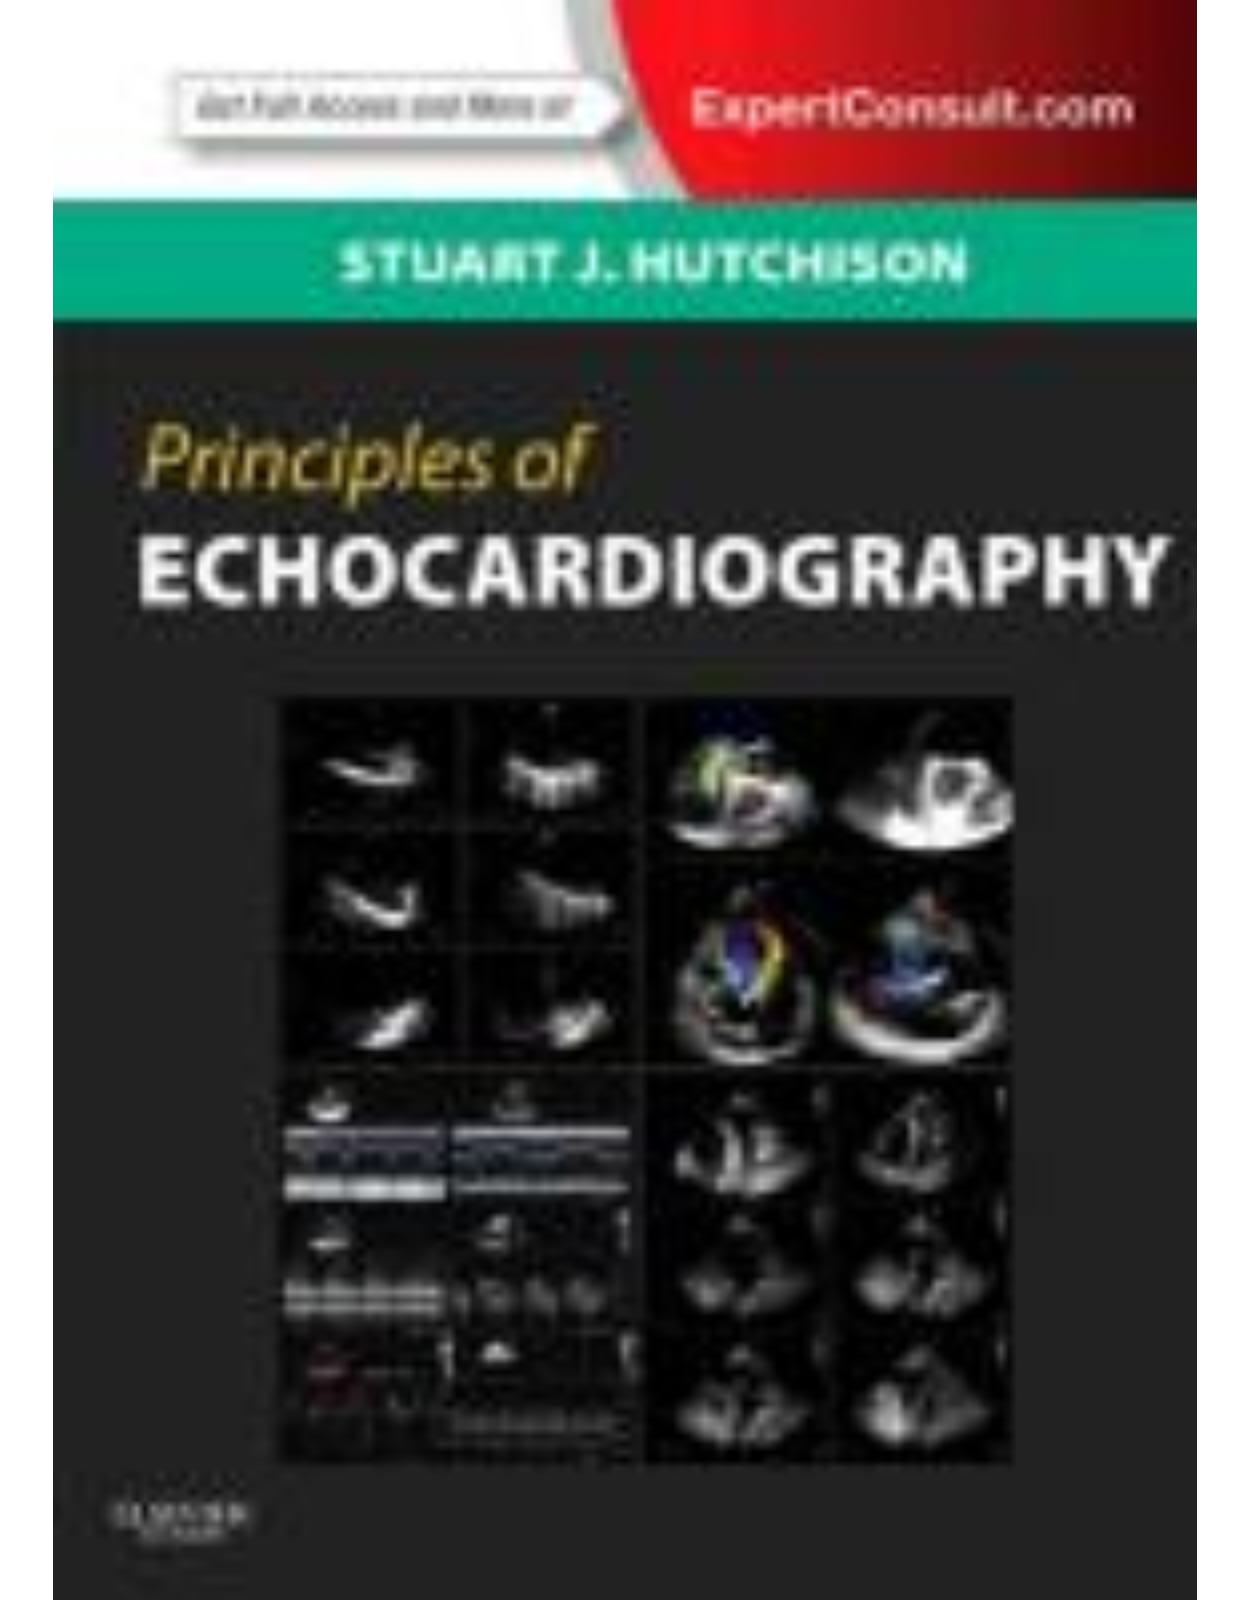 Principles of Echocardiography and Intracardiac Echocardiography Expert Consult – Online and Print